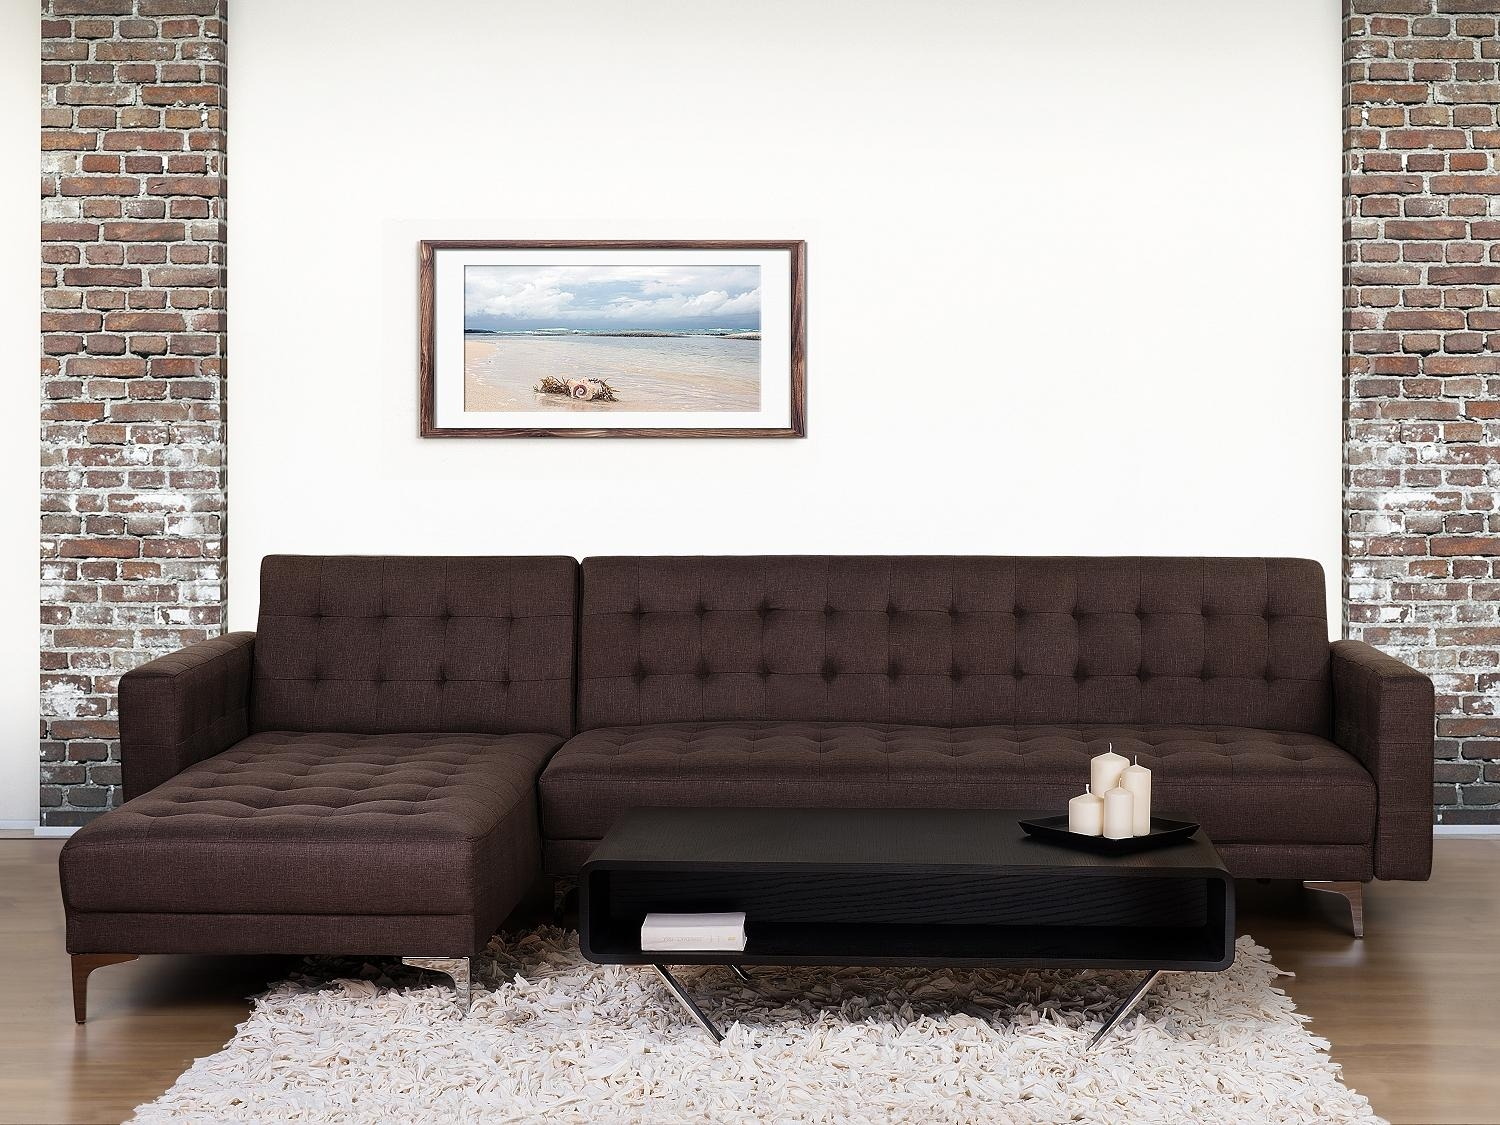 Brown Fabric Corner Sofa Bed Right / Left Side Armrest Sleep For Fabric Corner Sofa Bed (Image 5 of 20)